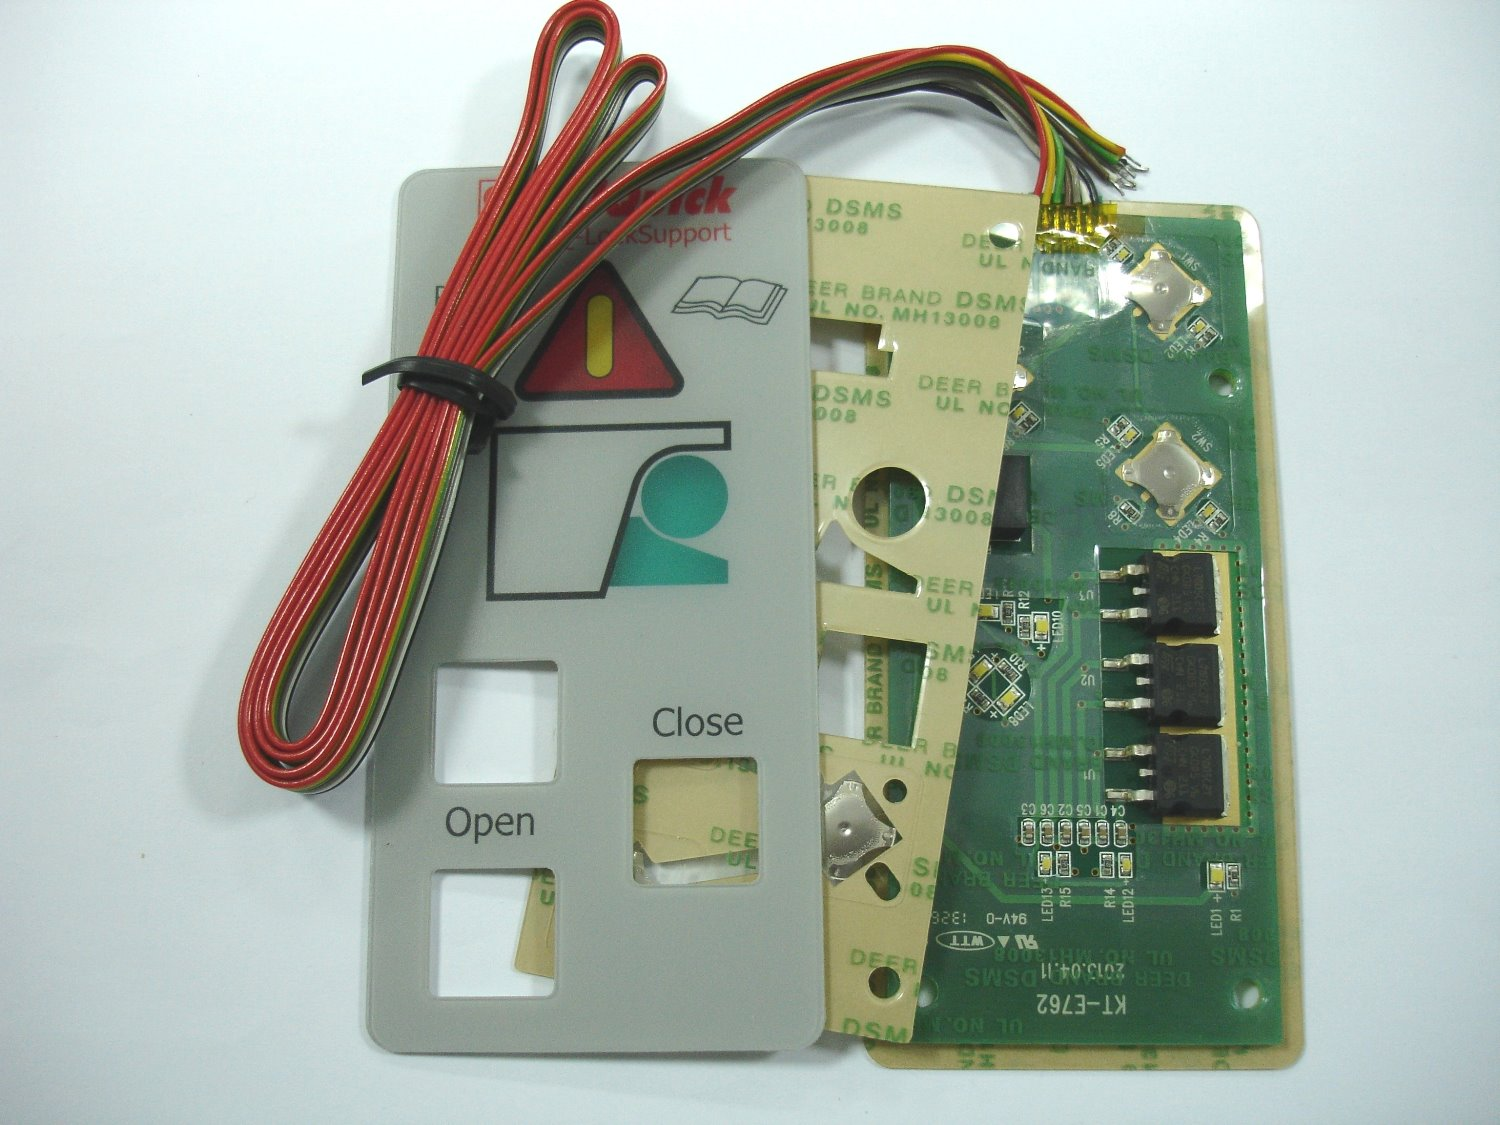 Printed Wiring Board Kingley Tech Flexible Circuit Fpc Is A Type Of Made